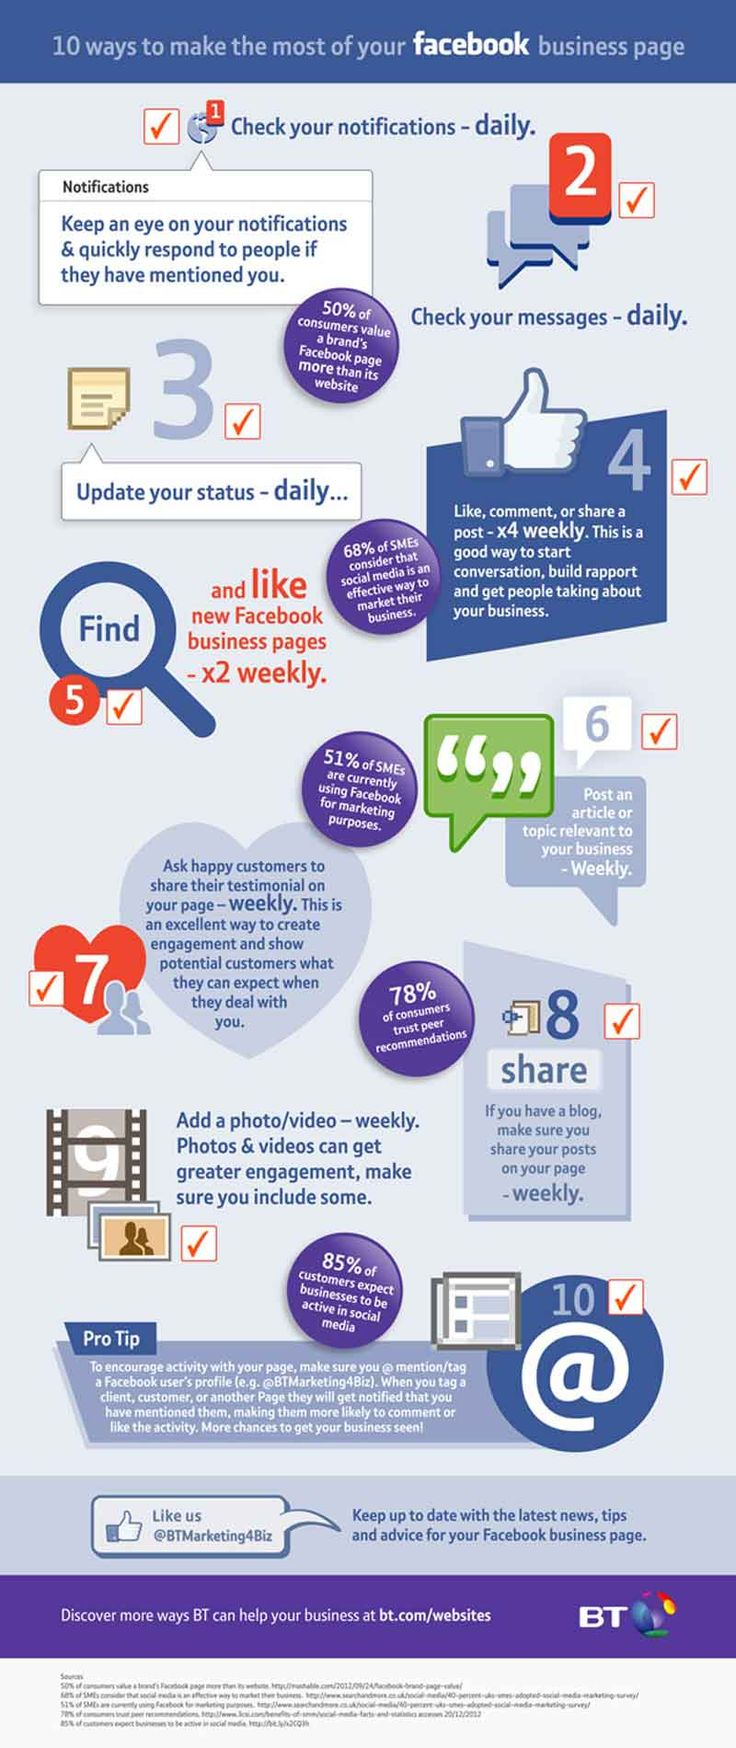 Top 10 Tips for Facebook Business Page [#infographic]